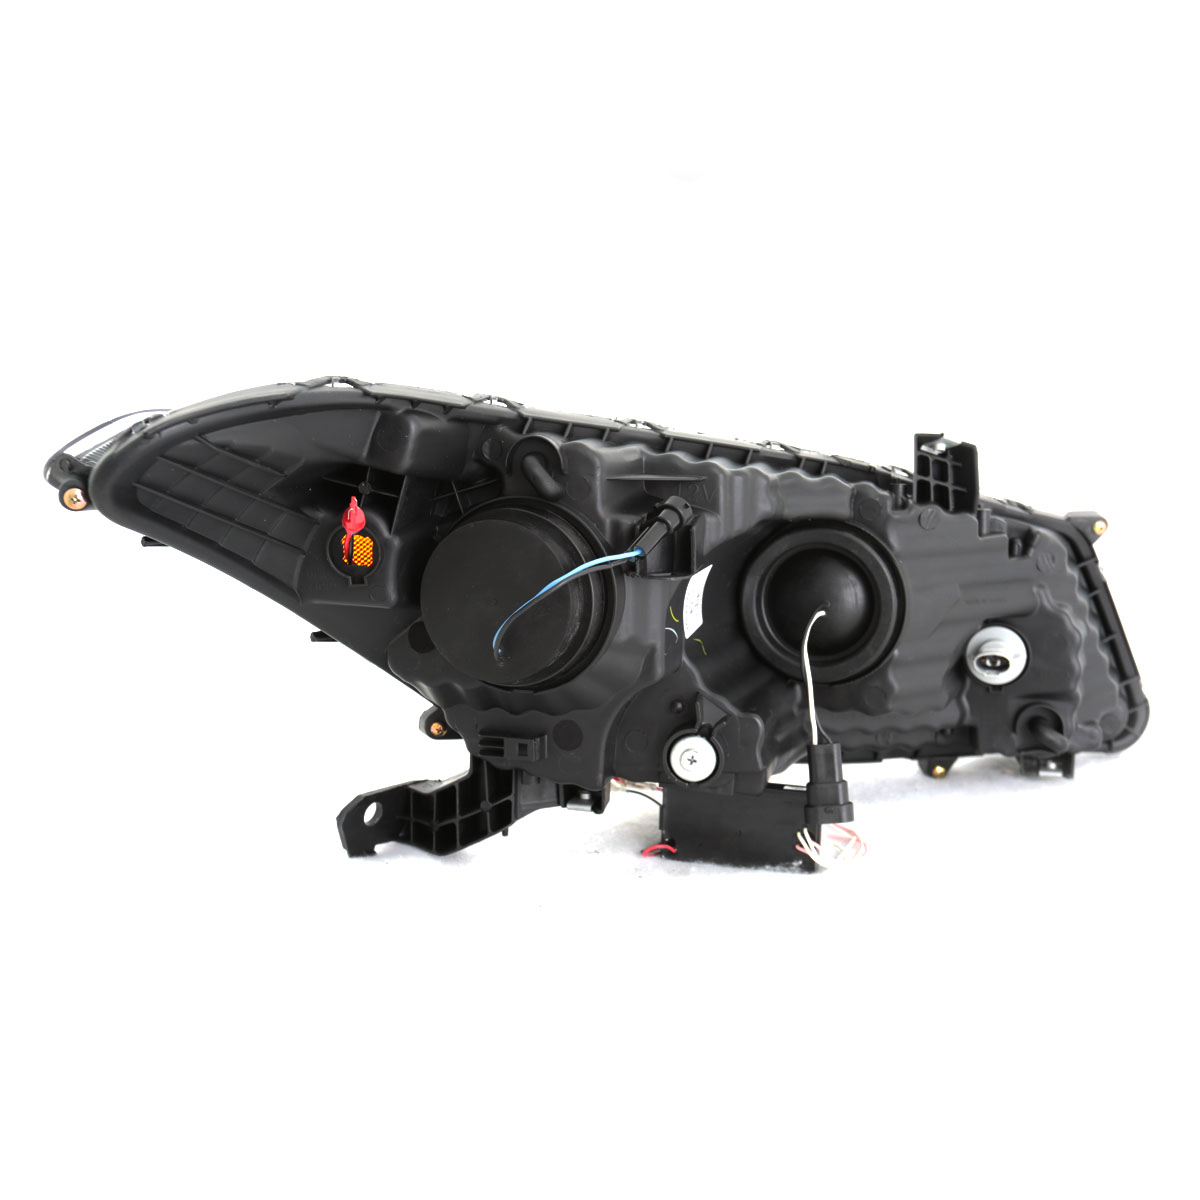 Ccfl Halo 2008 2009 2010 2011 2012 Honda Accord 2dr